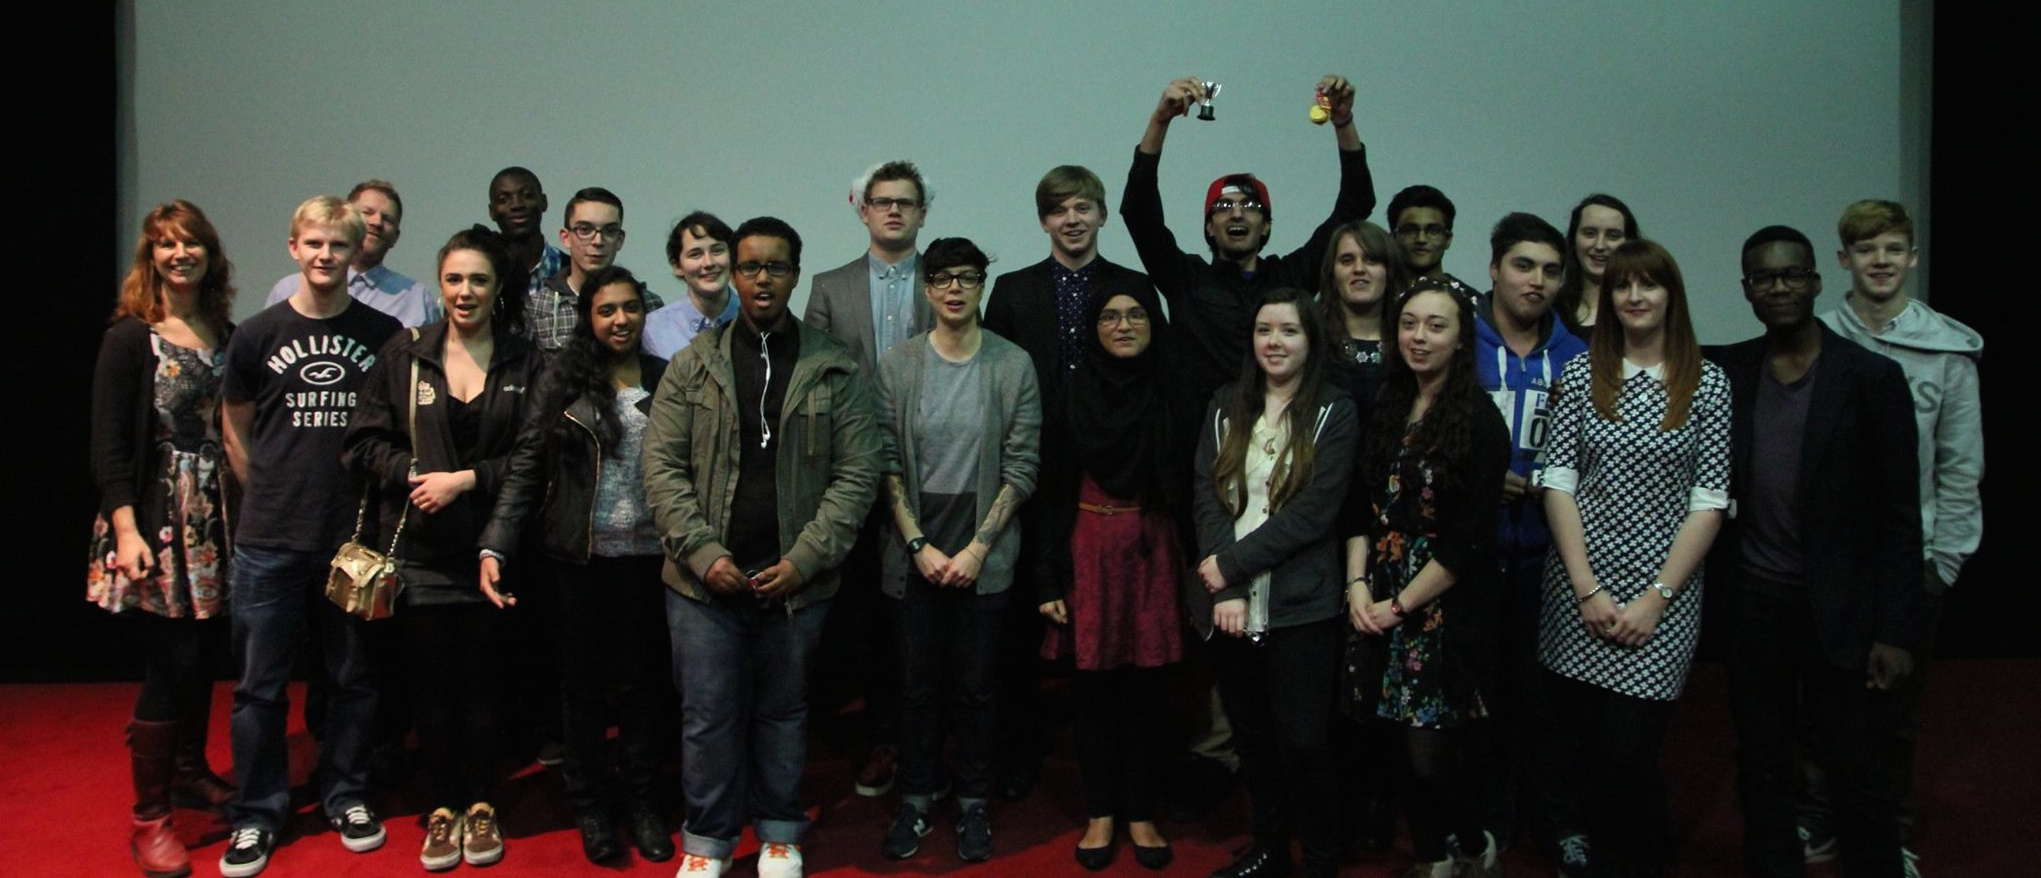 BFI students at Film Premier